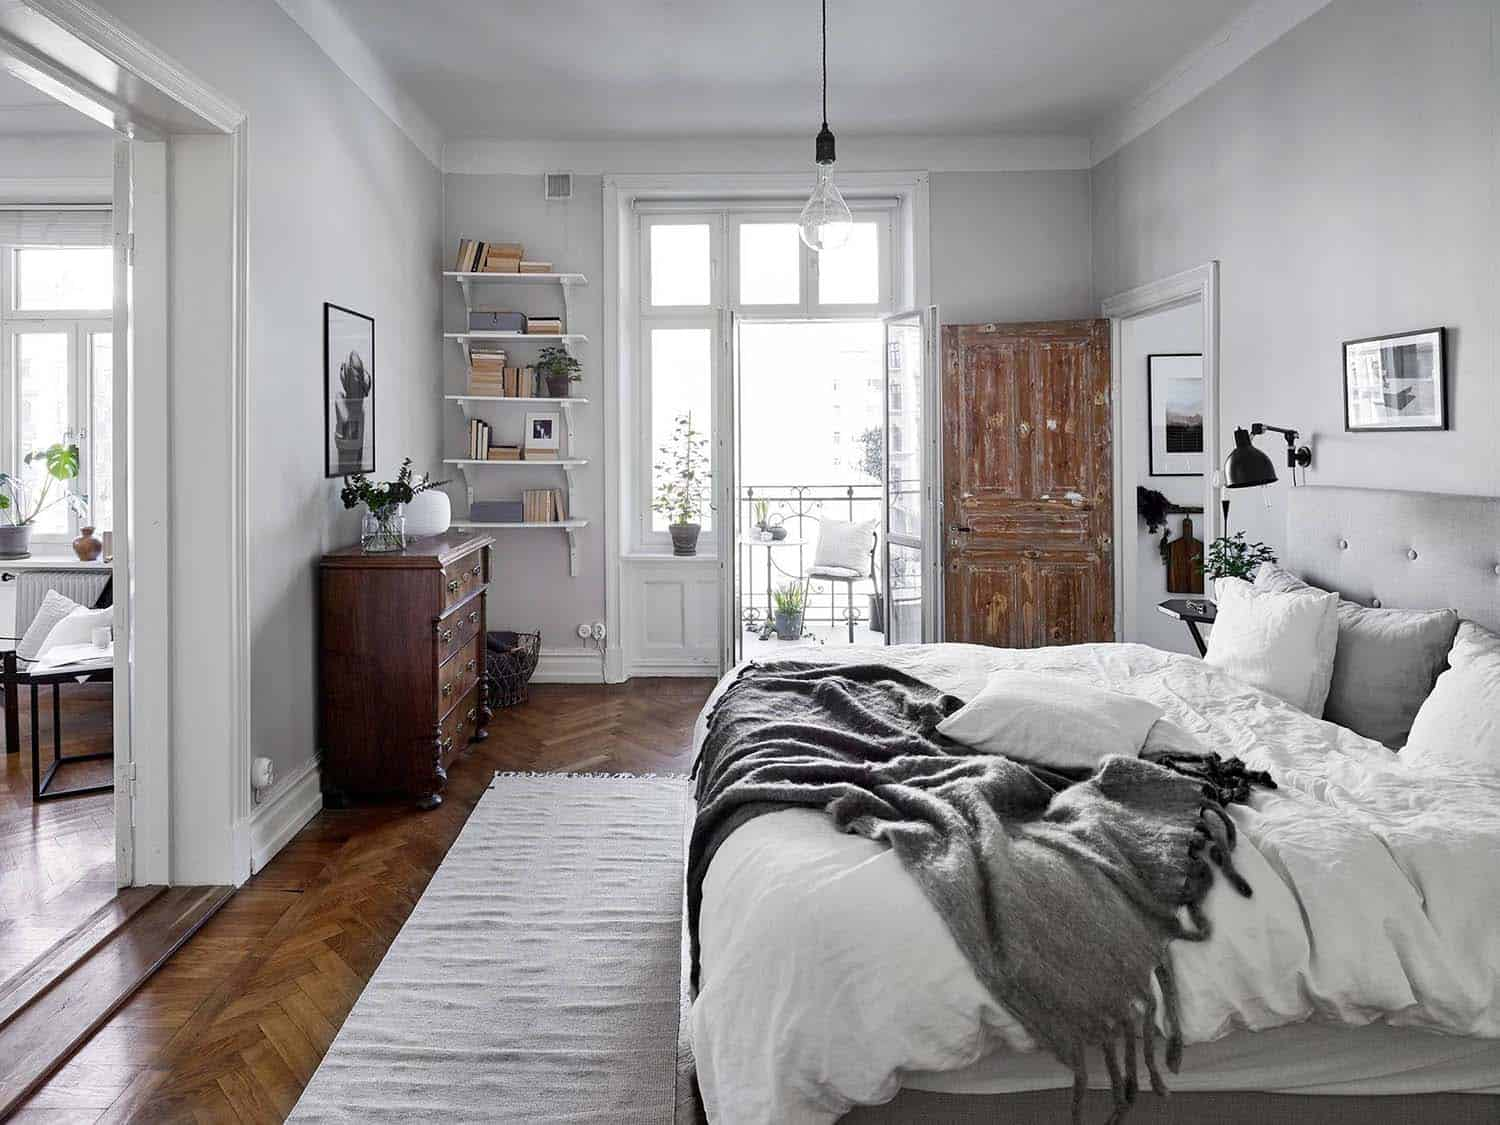 Cozy Bedroom Decorating Ideas For Winter-29-1 Kindesign